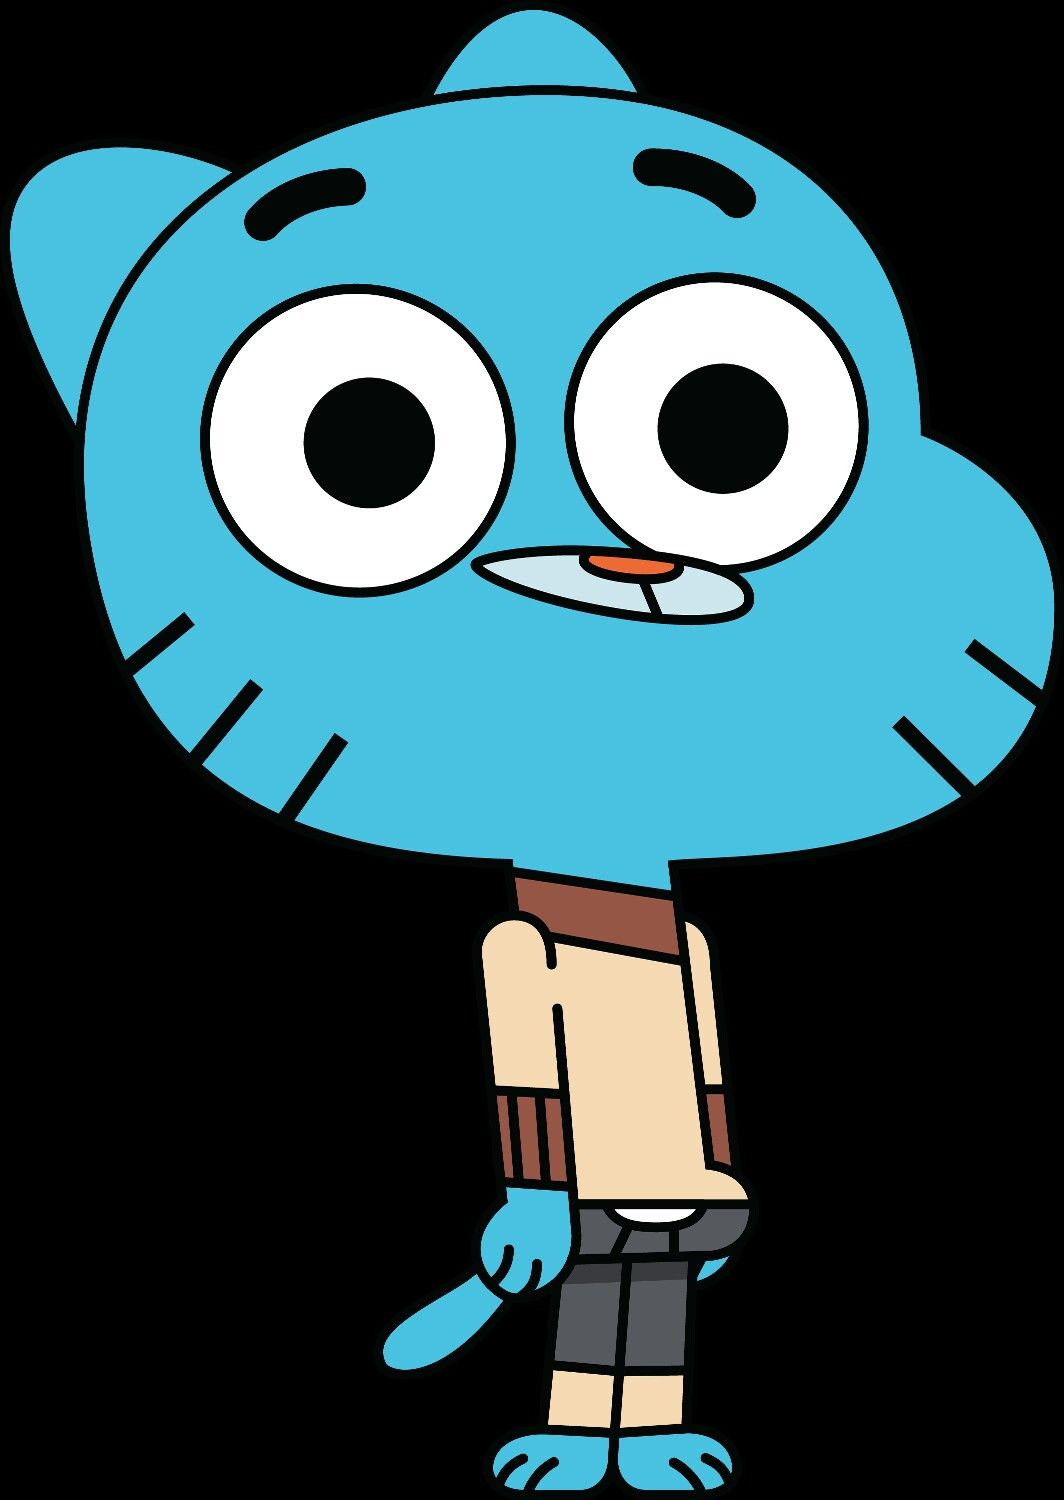 gumball season 3 of the amazing world of gumball the